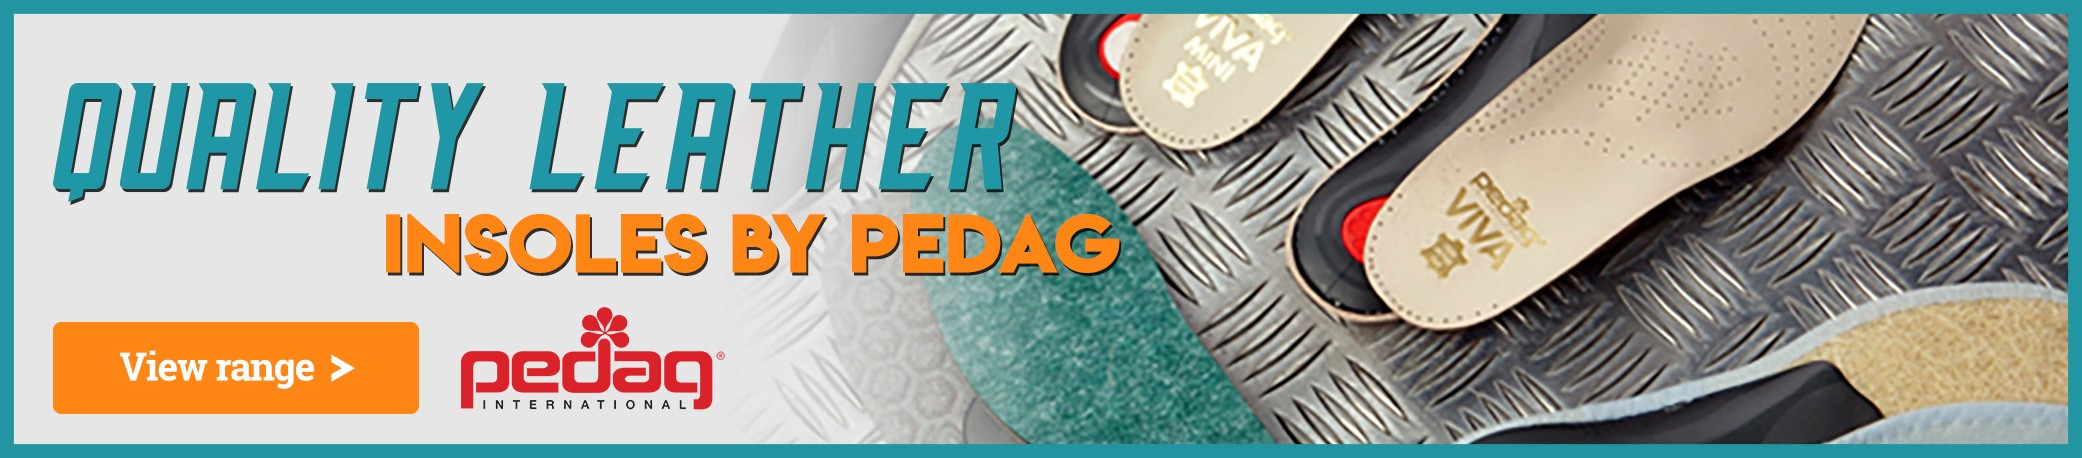 Visit our Pedag Category to See Our Full Range of Pedag Insoles